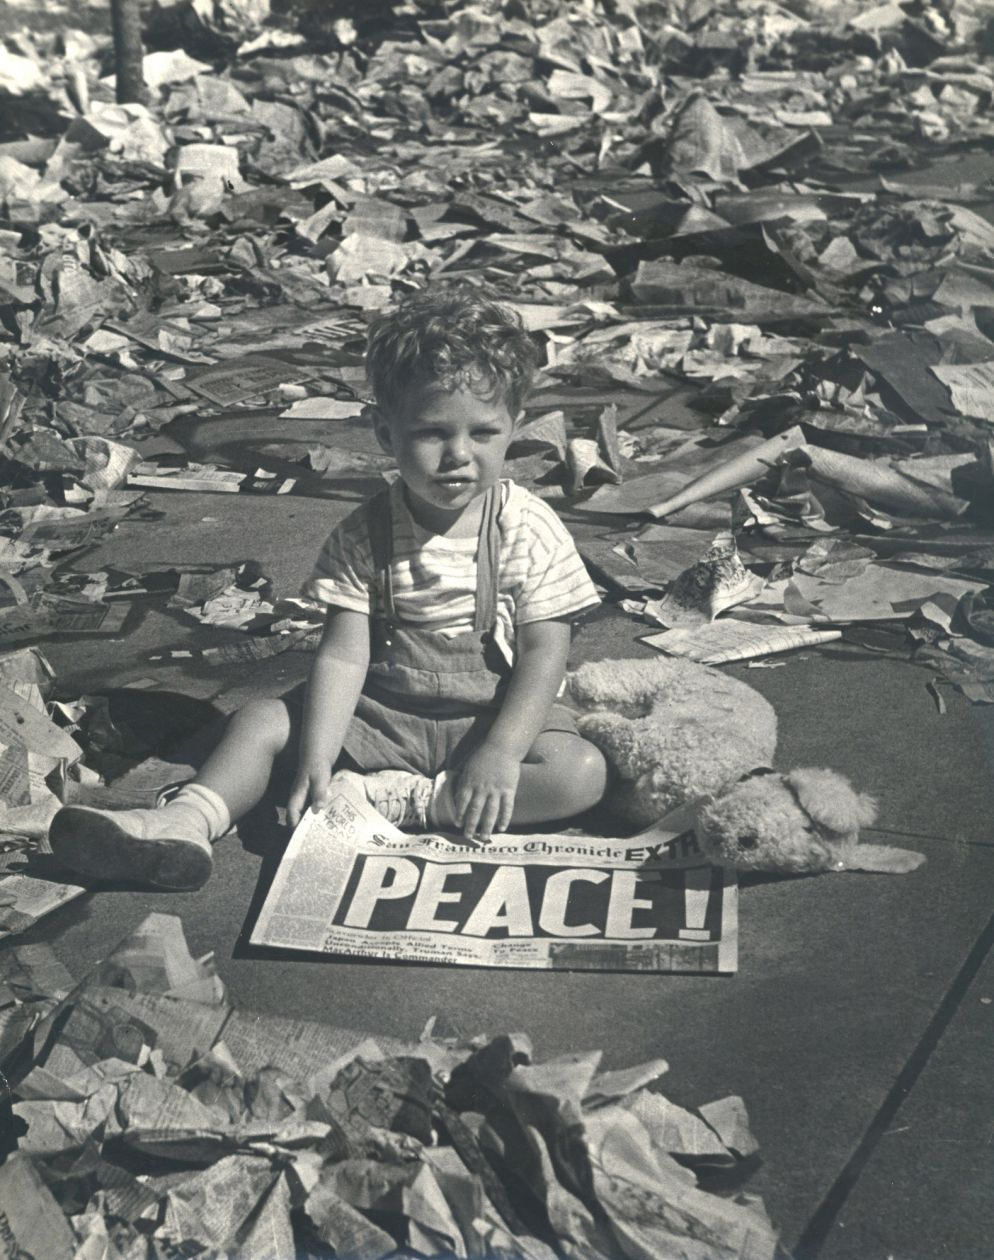 Untitled (Boy with newspaper, Peace!) (1945) by Hansel Mieth and Otto Hagel